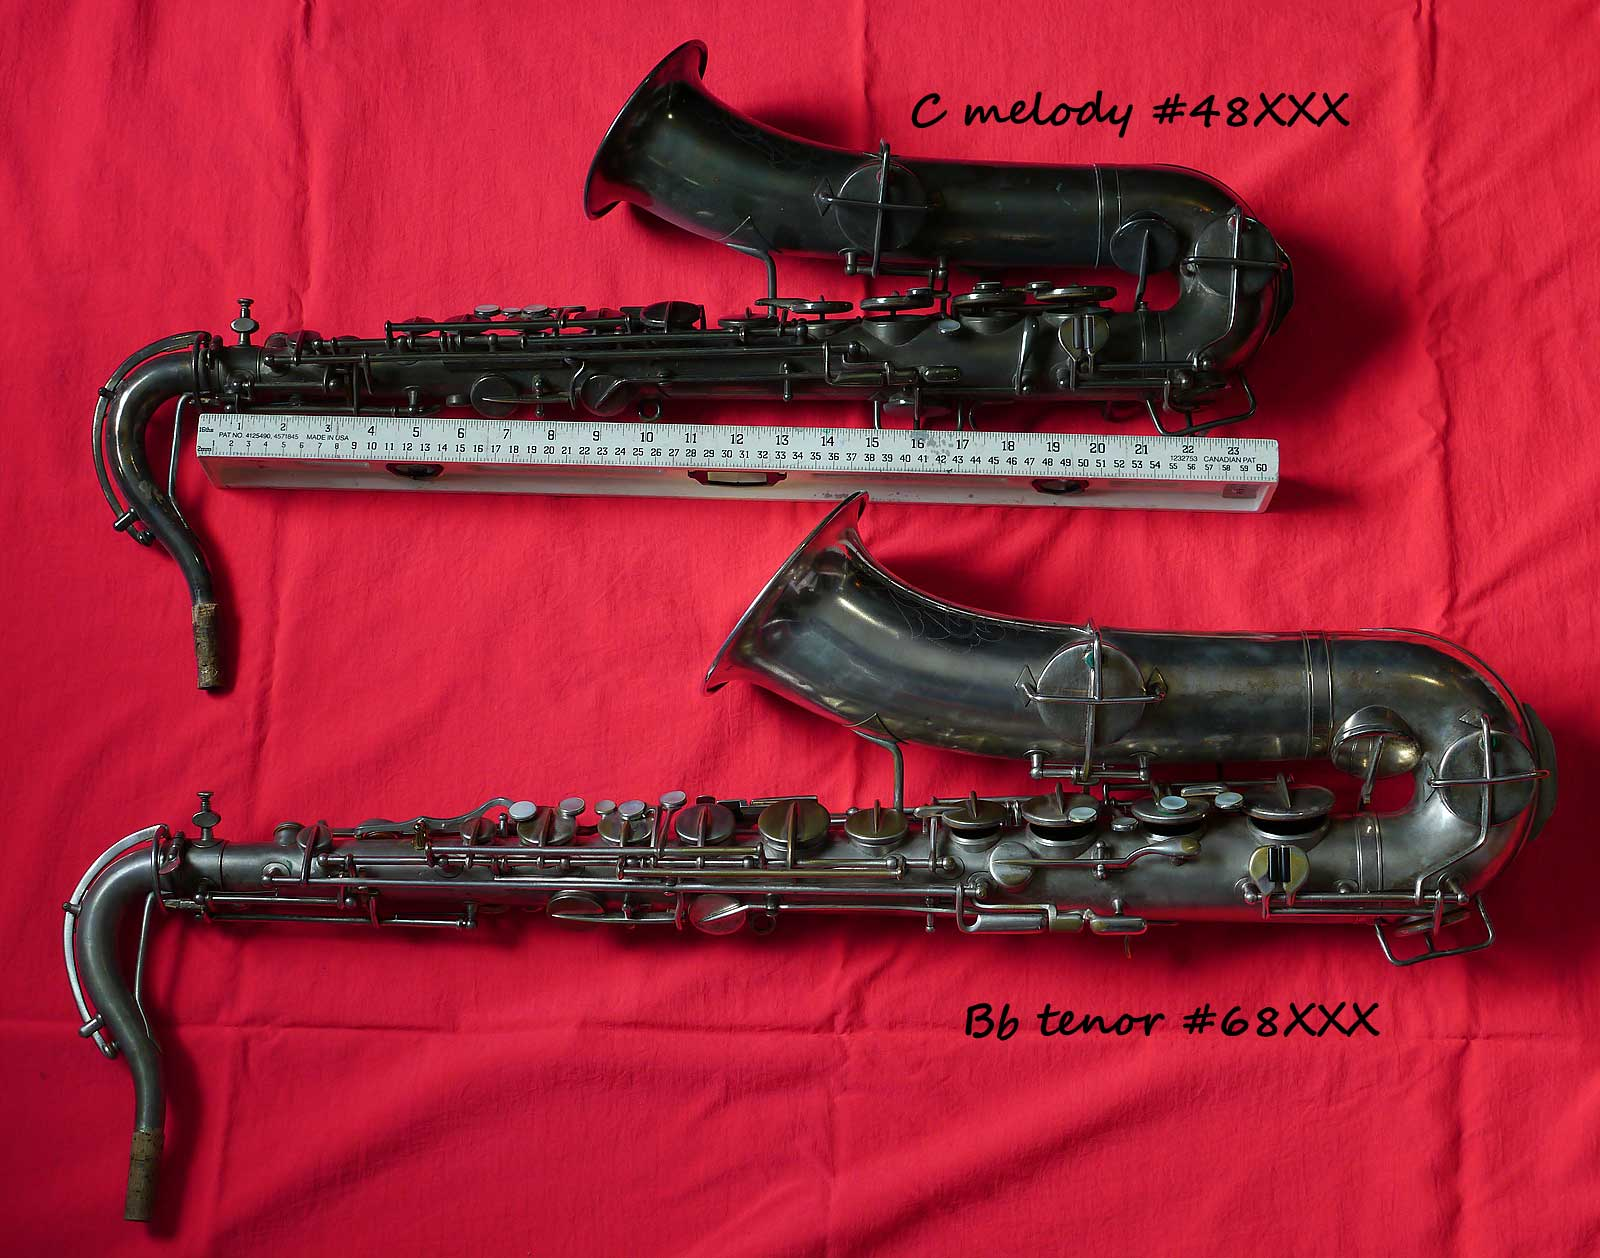 How can you tell a C melody from a Bb tenor sax, Handcraft, Martn tenor sax, Martin C melody sax, ruler